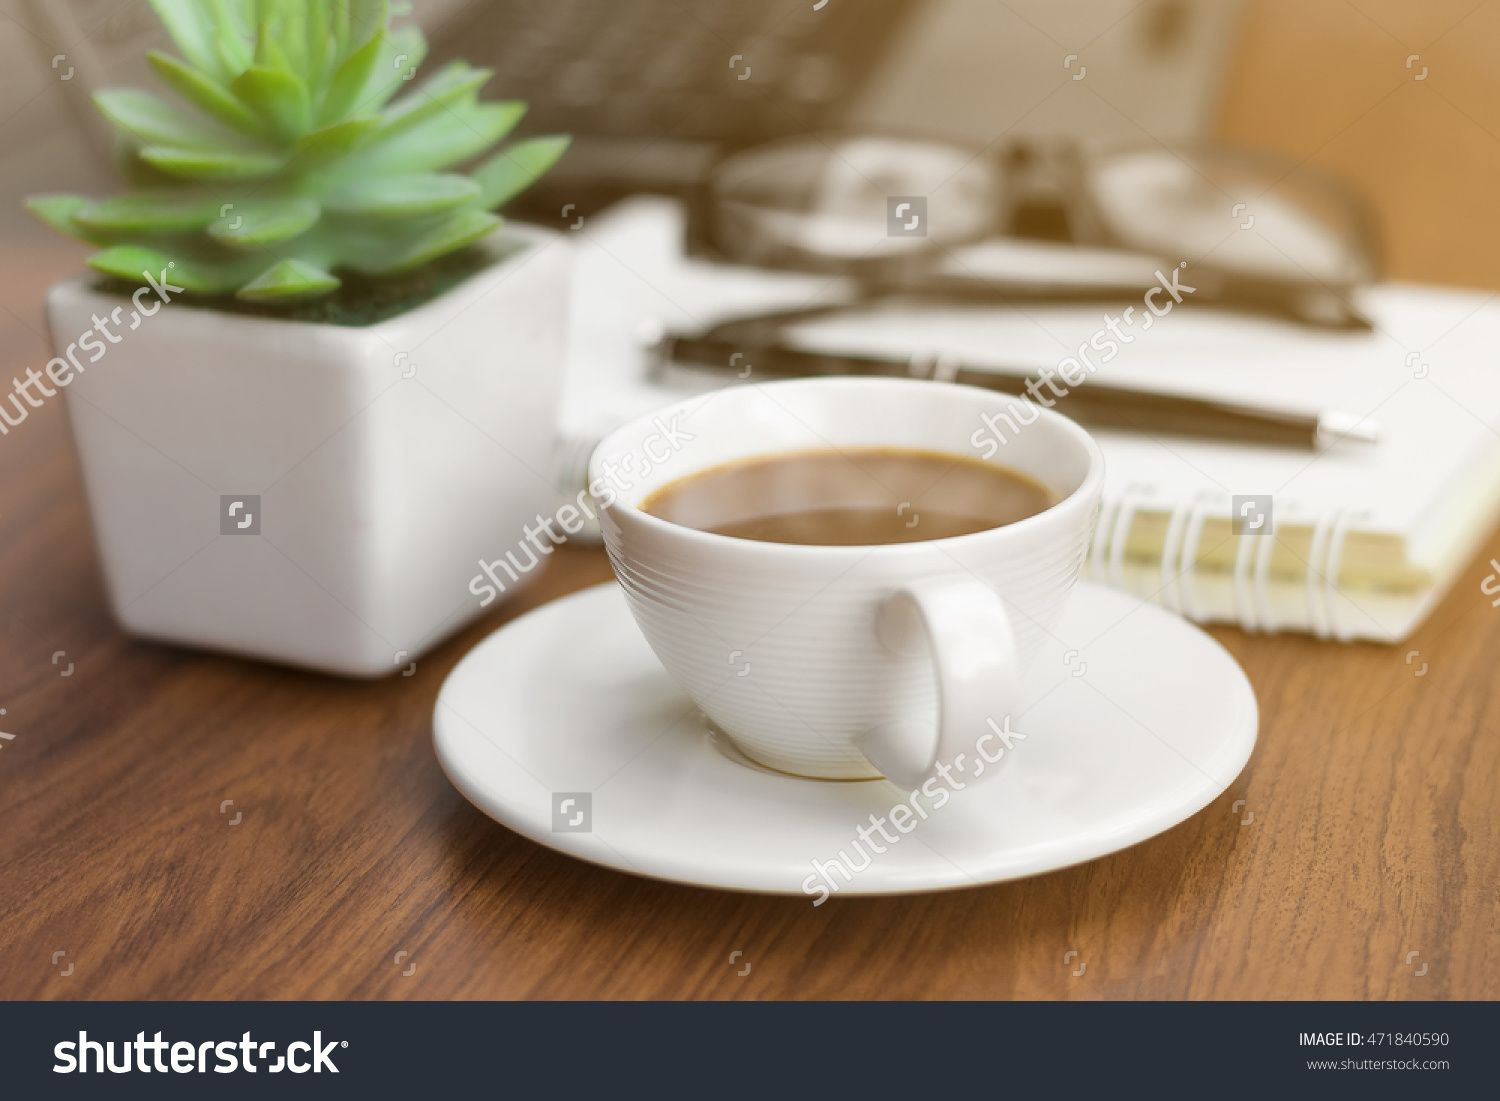 A coffee cup on the office desk in sunrise is a happy time. #coffee #cup #notebook #office #business